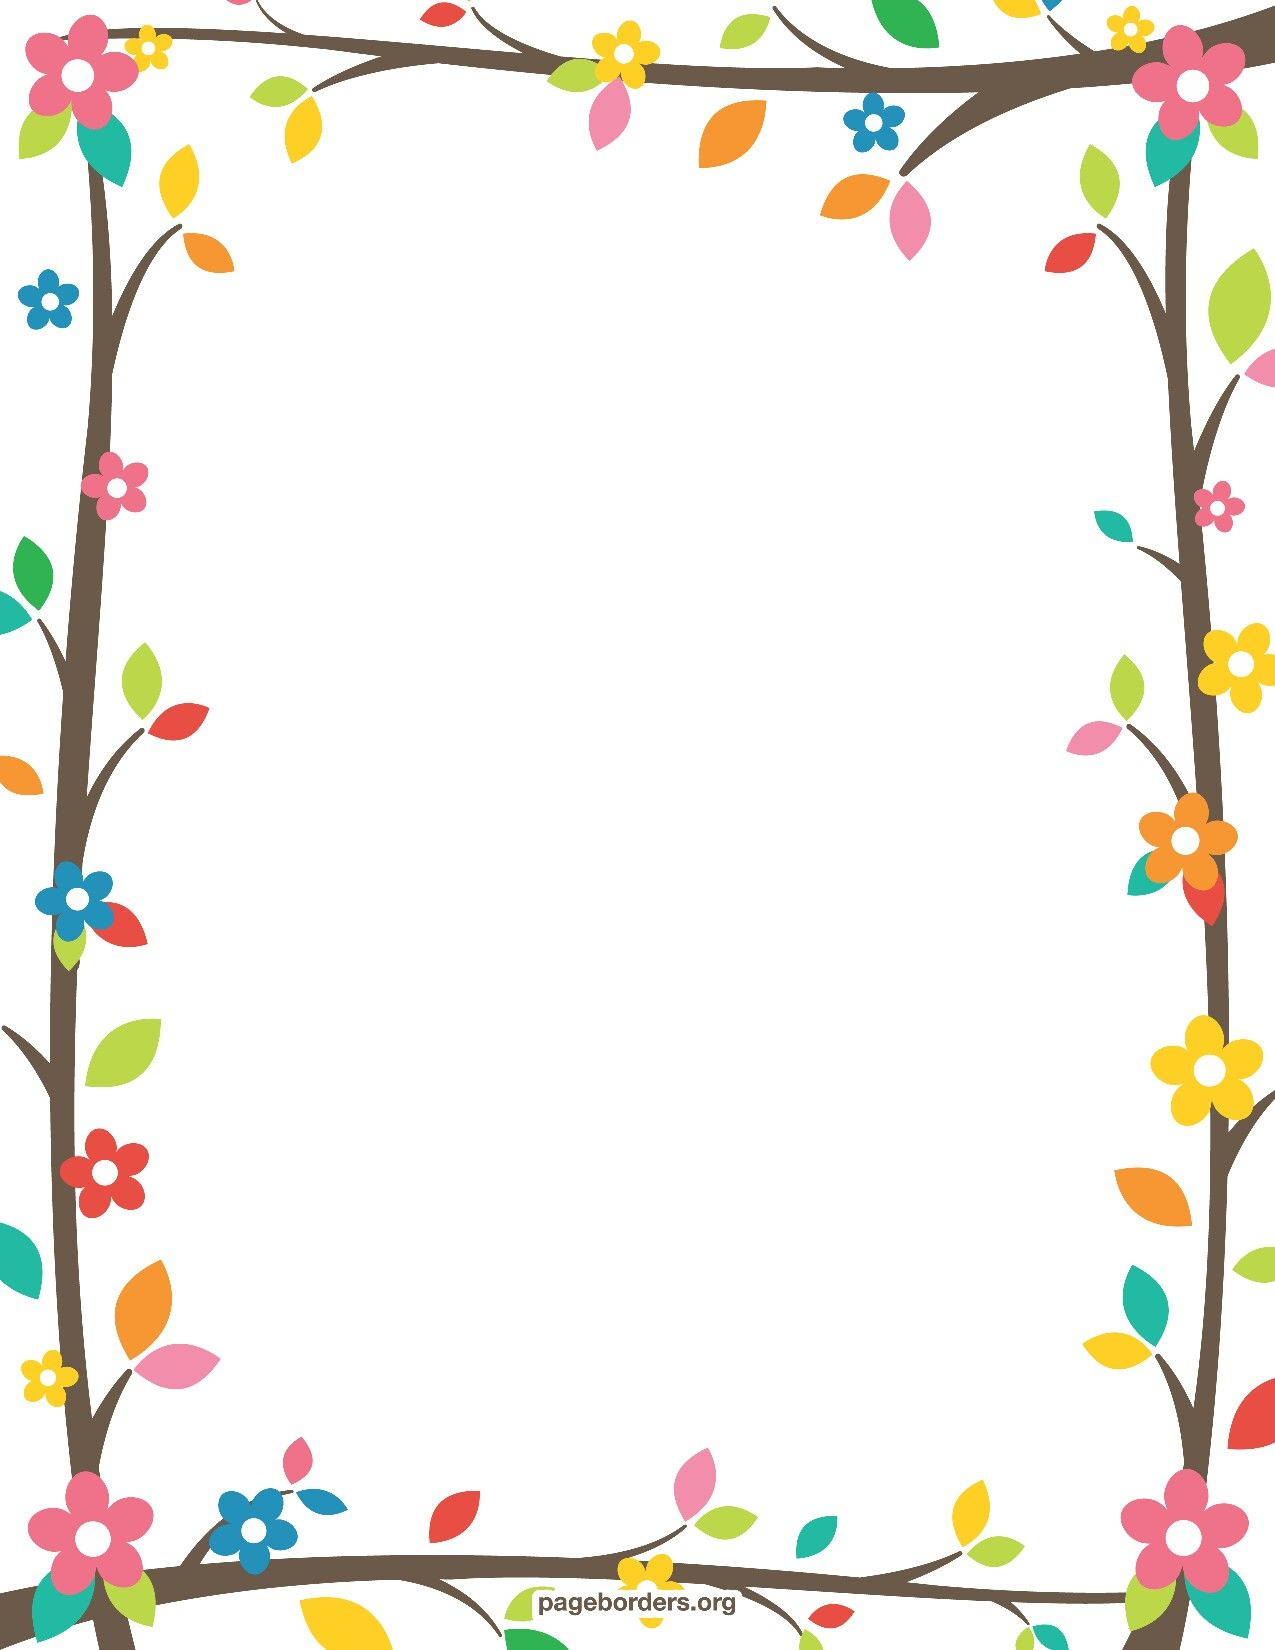 Resultado De Imagen Para Free Printable Border Designs For Paper - Free Printable Borders And Frames